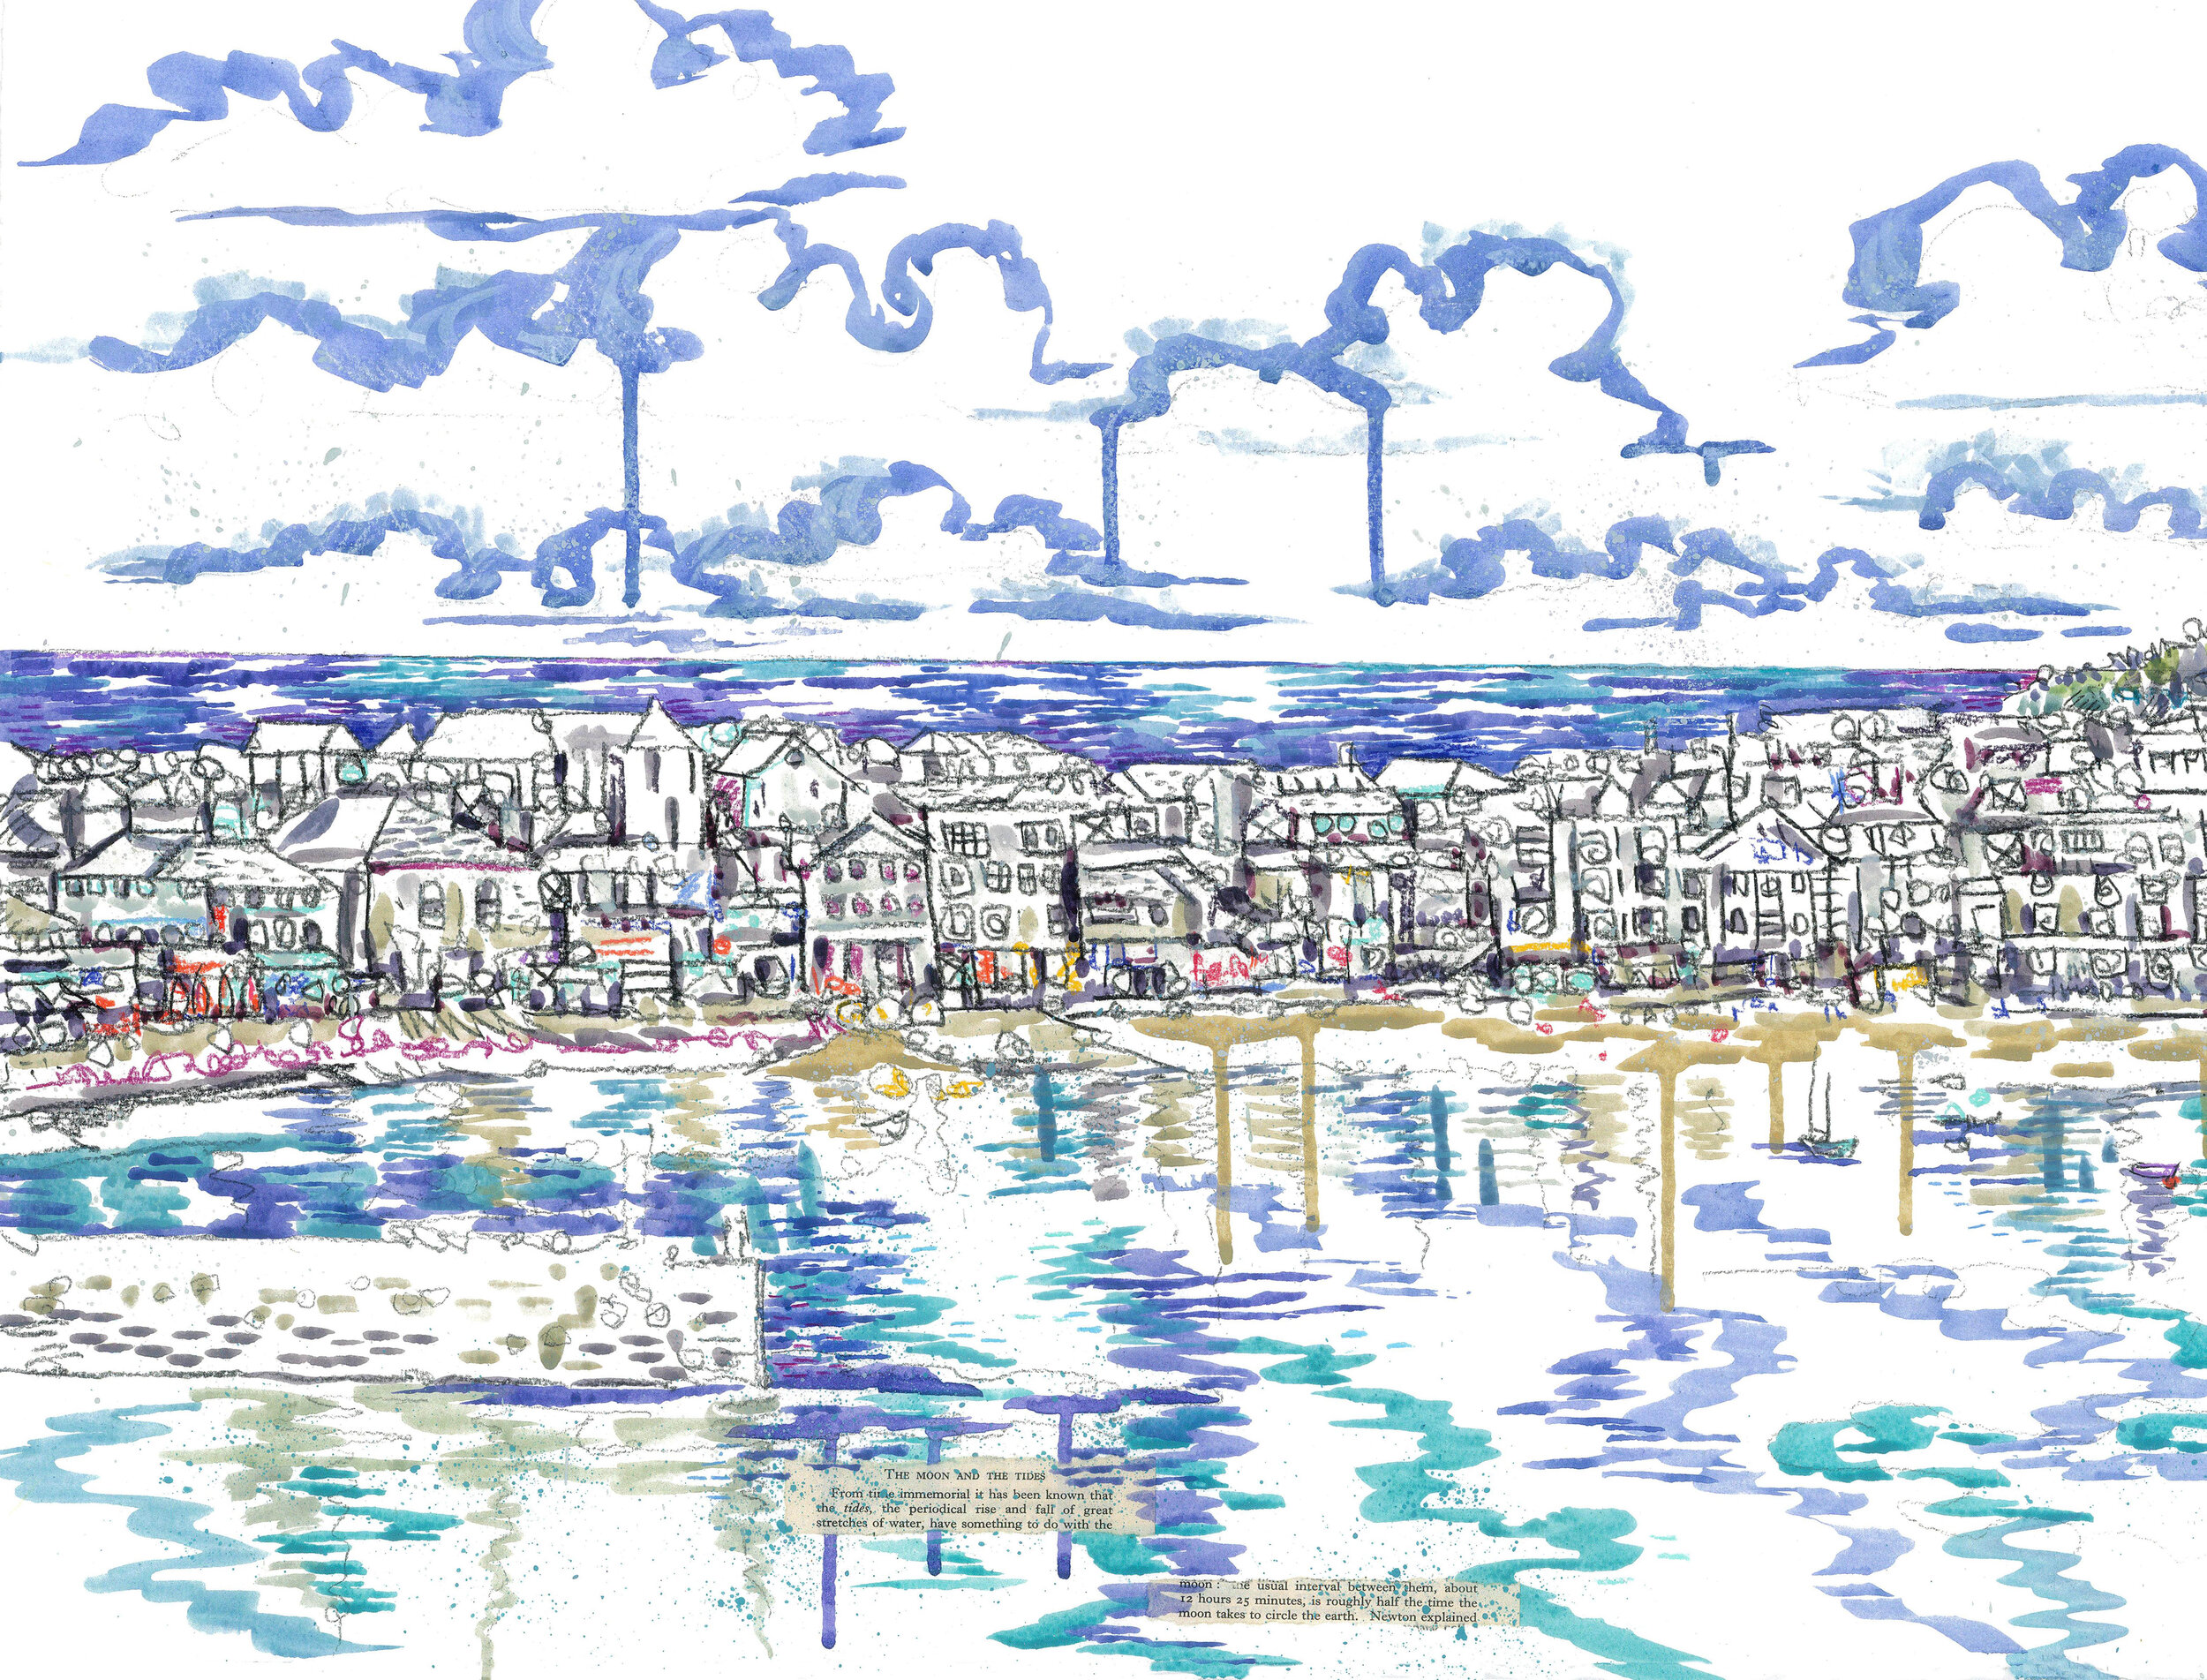 St_Ives_7(Paolo)section3.jpg